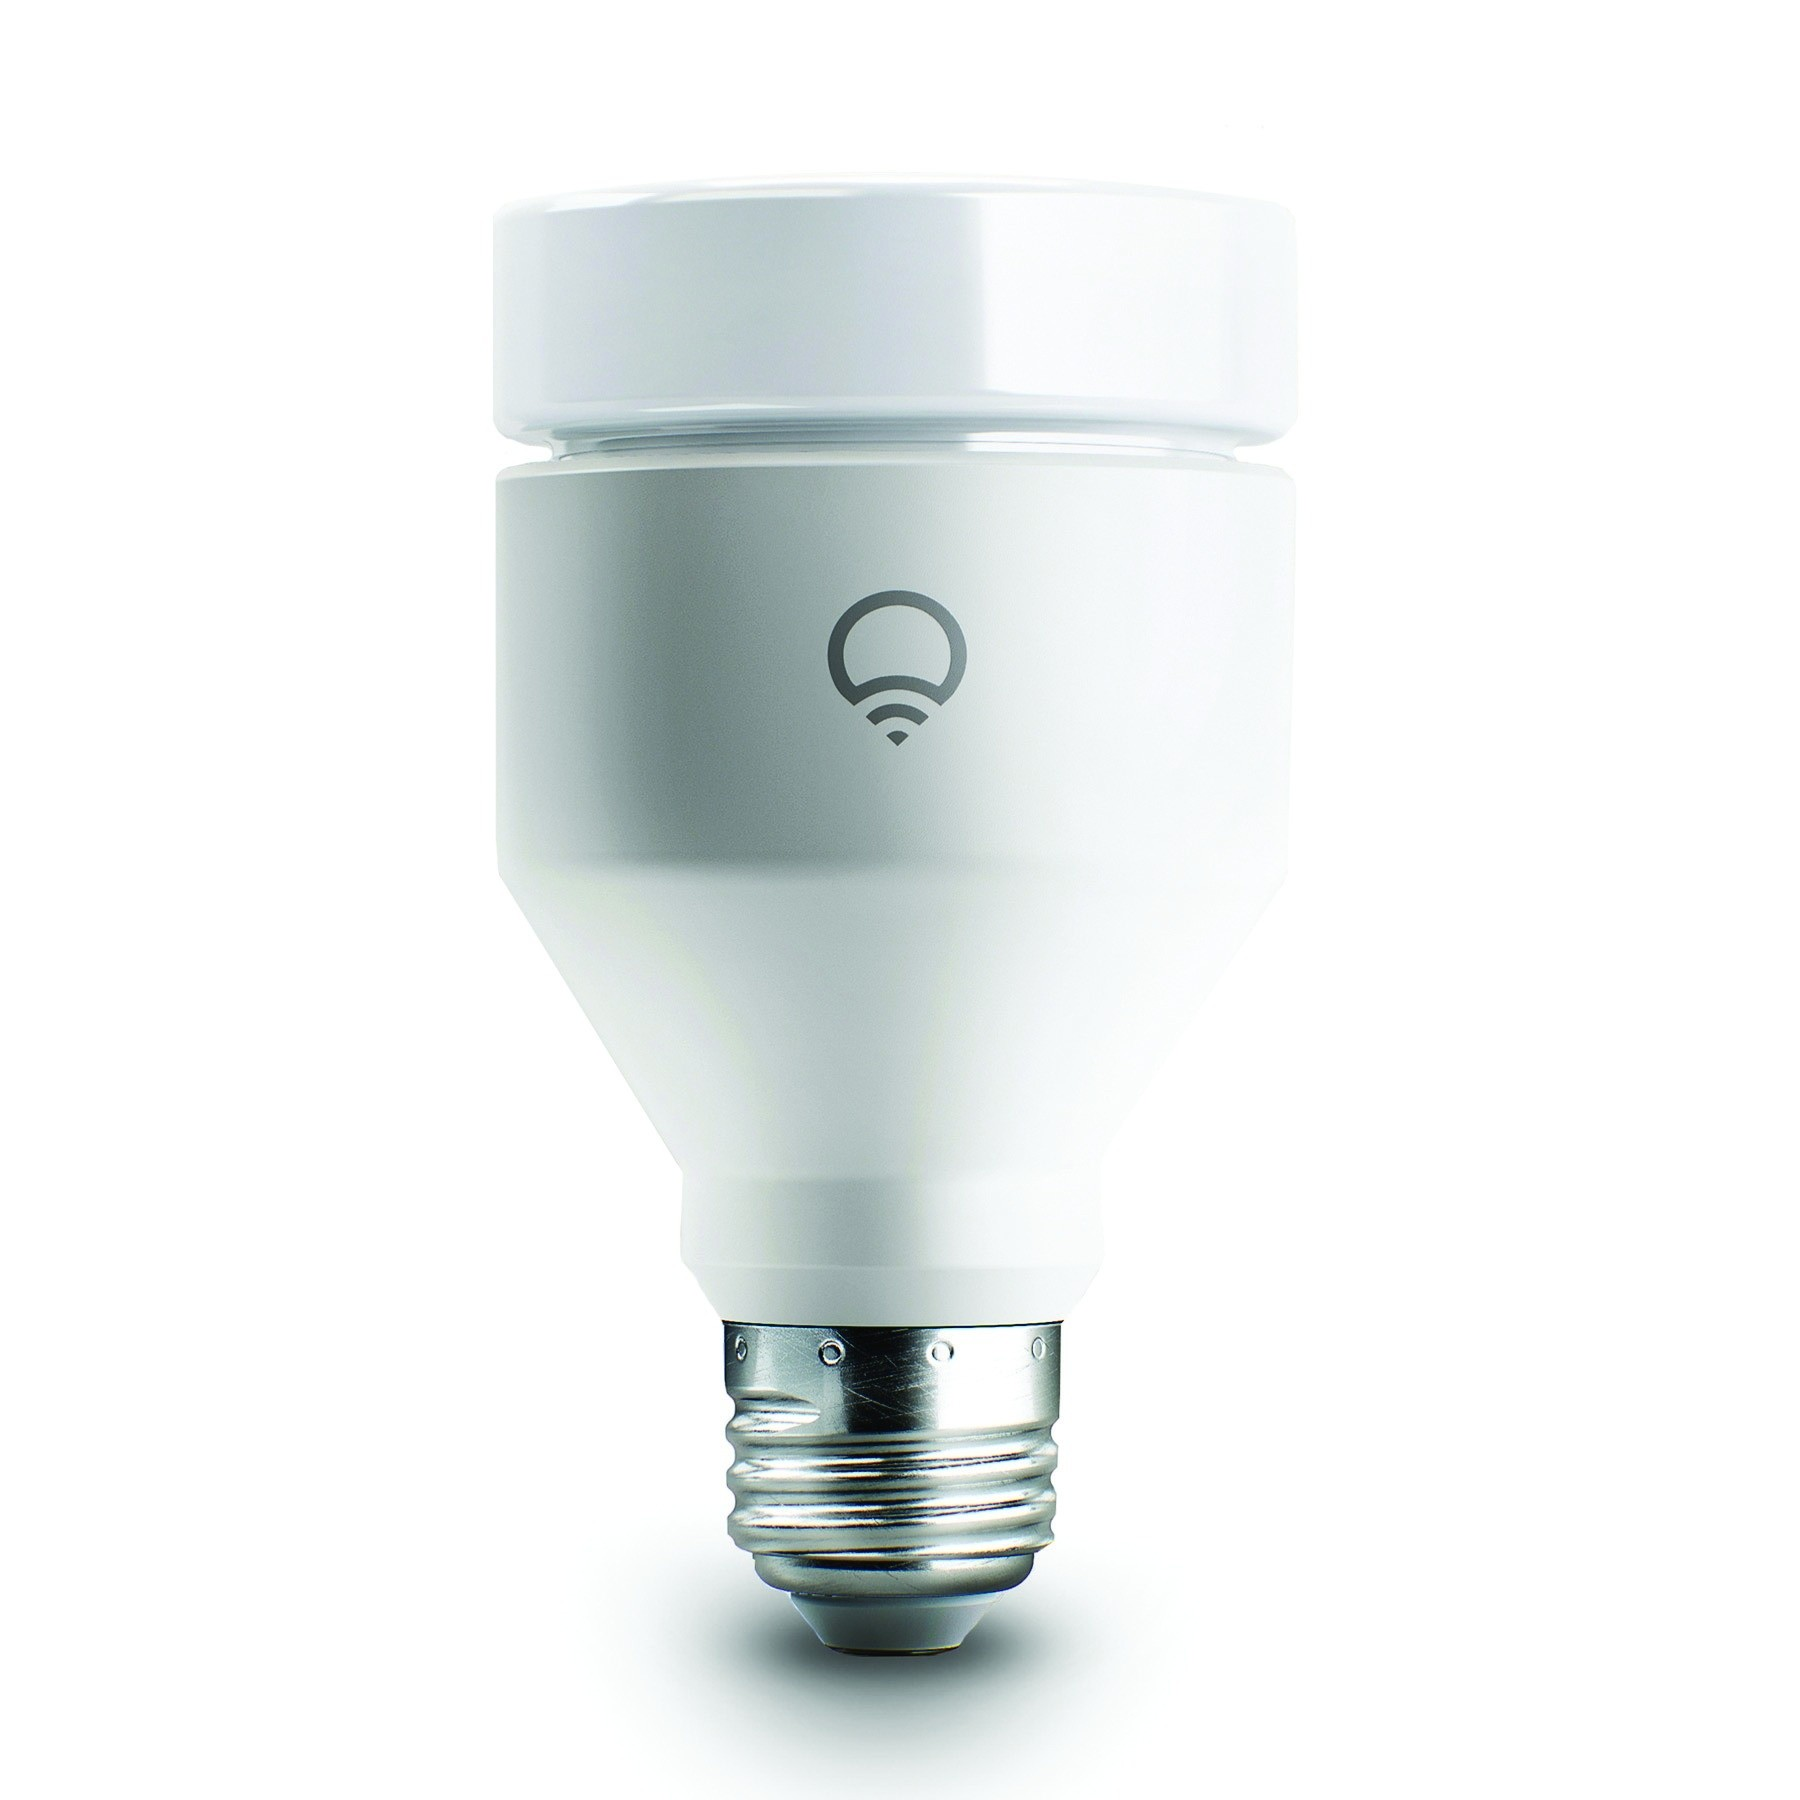 Lifx Bright A Wi Fi Led Smart Bulb E27 Dimmable Lightbulb Ebay